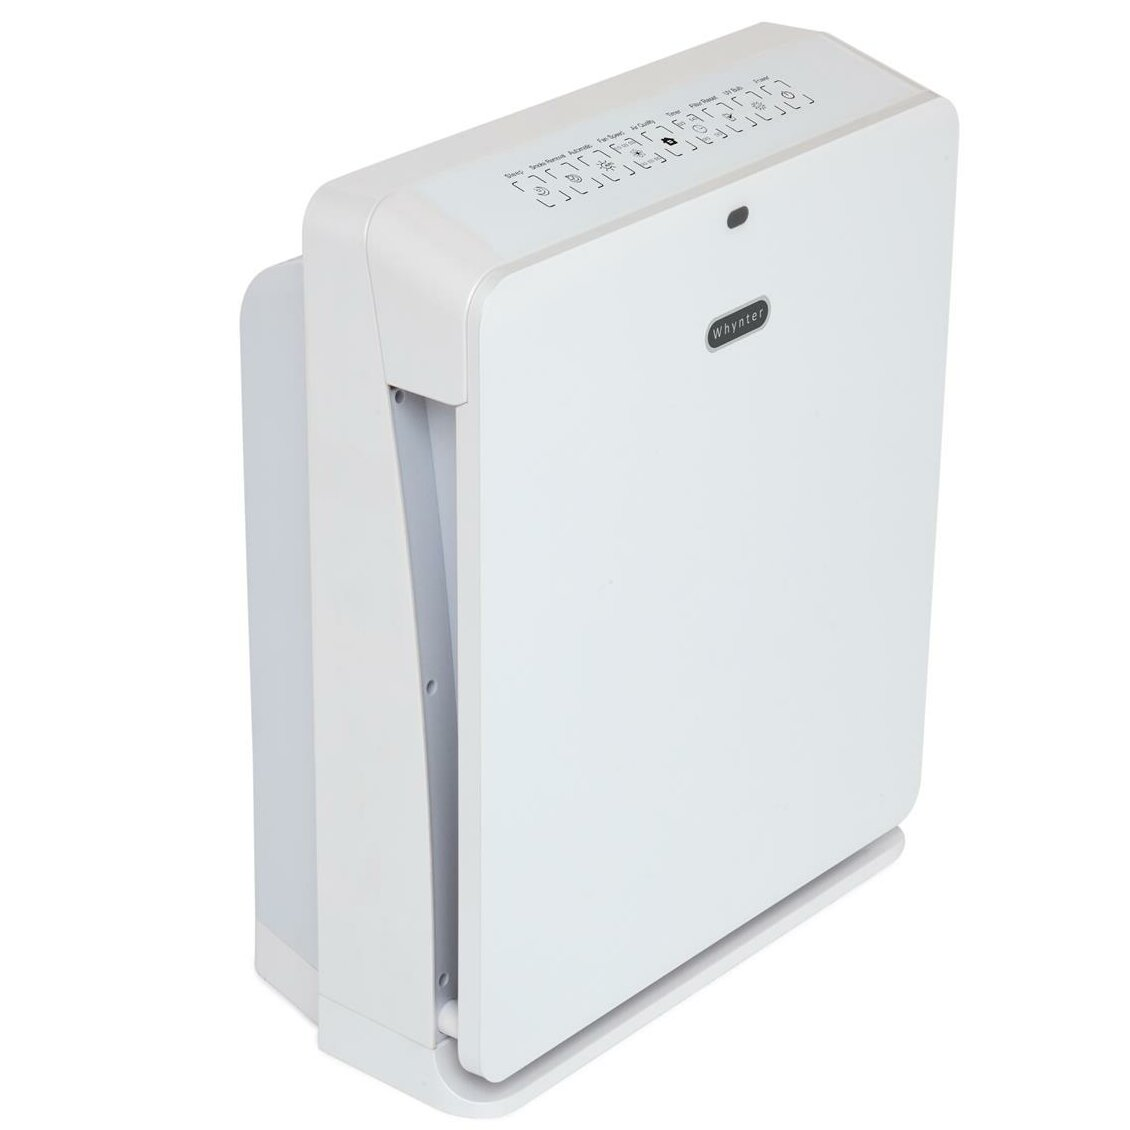 Whynter EcoPure Room HEPA Air Purifier & Reviews